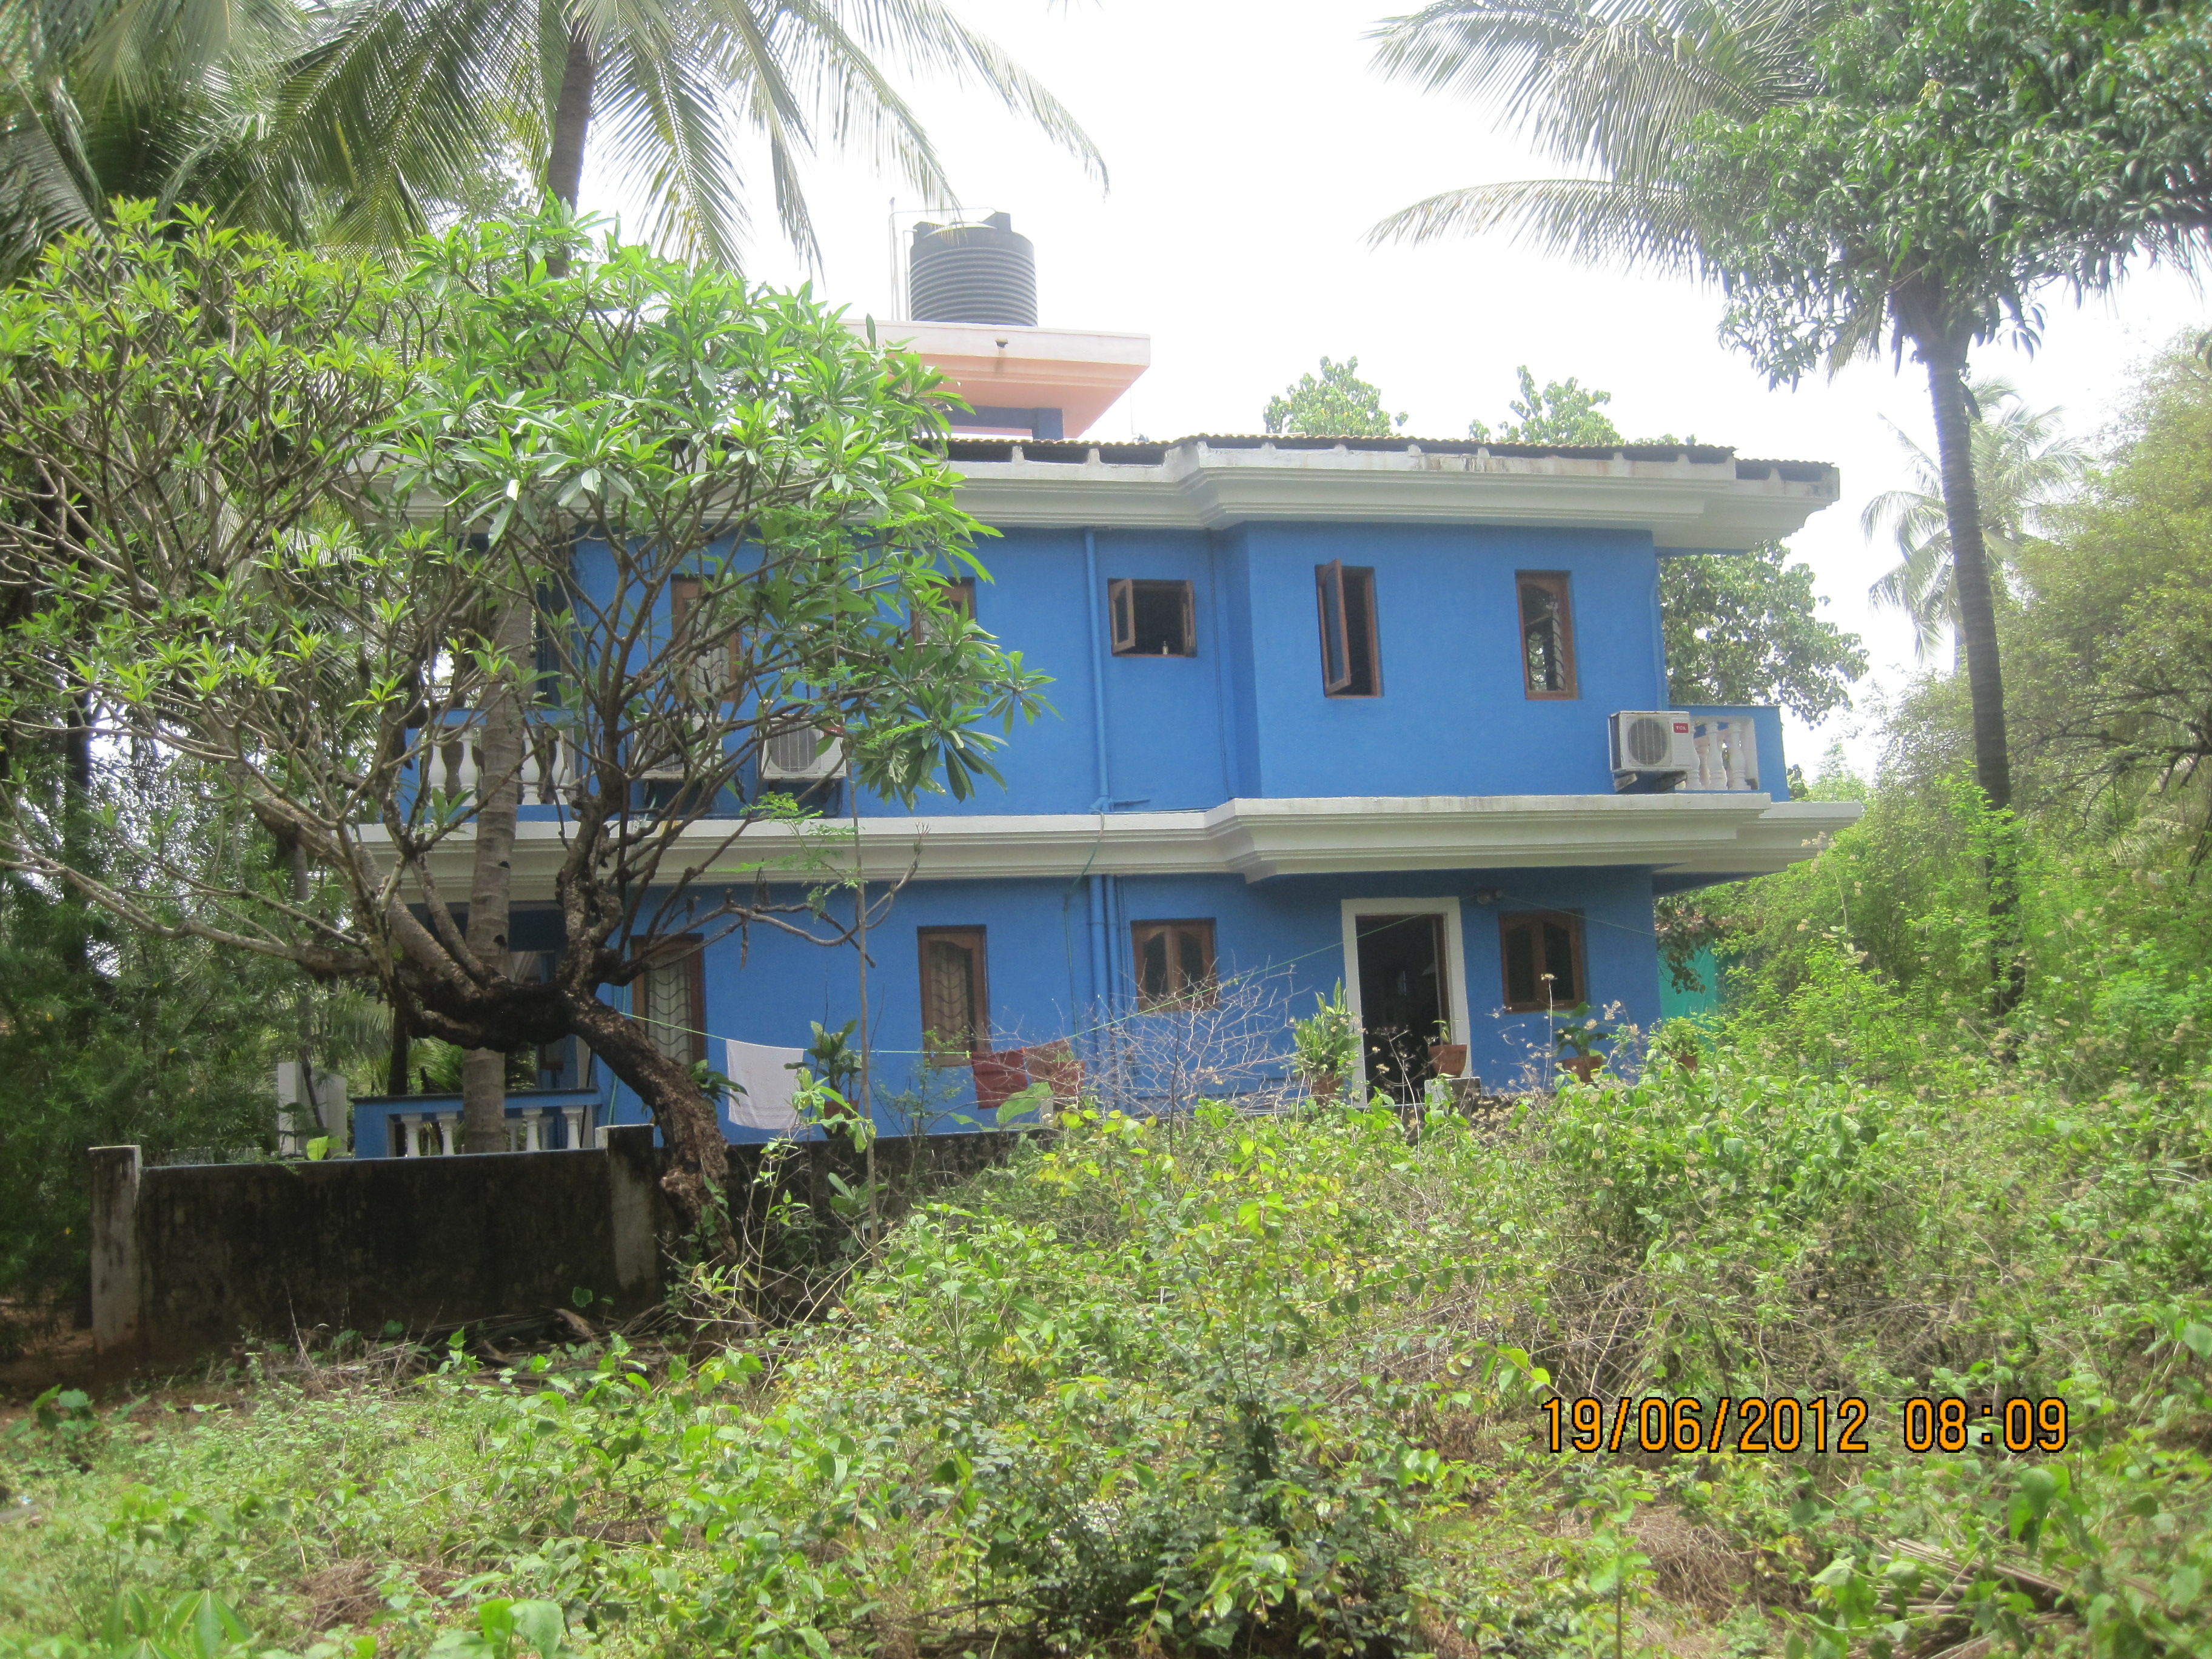 House for sale in goa beautiful house in candolim goa for Small house for sale in goa